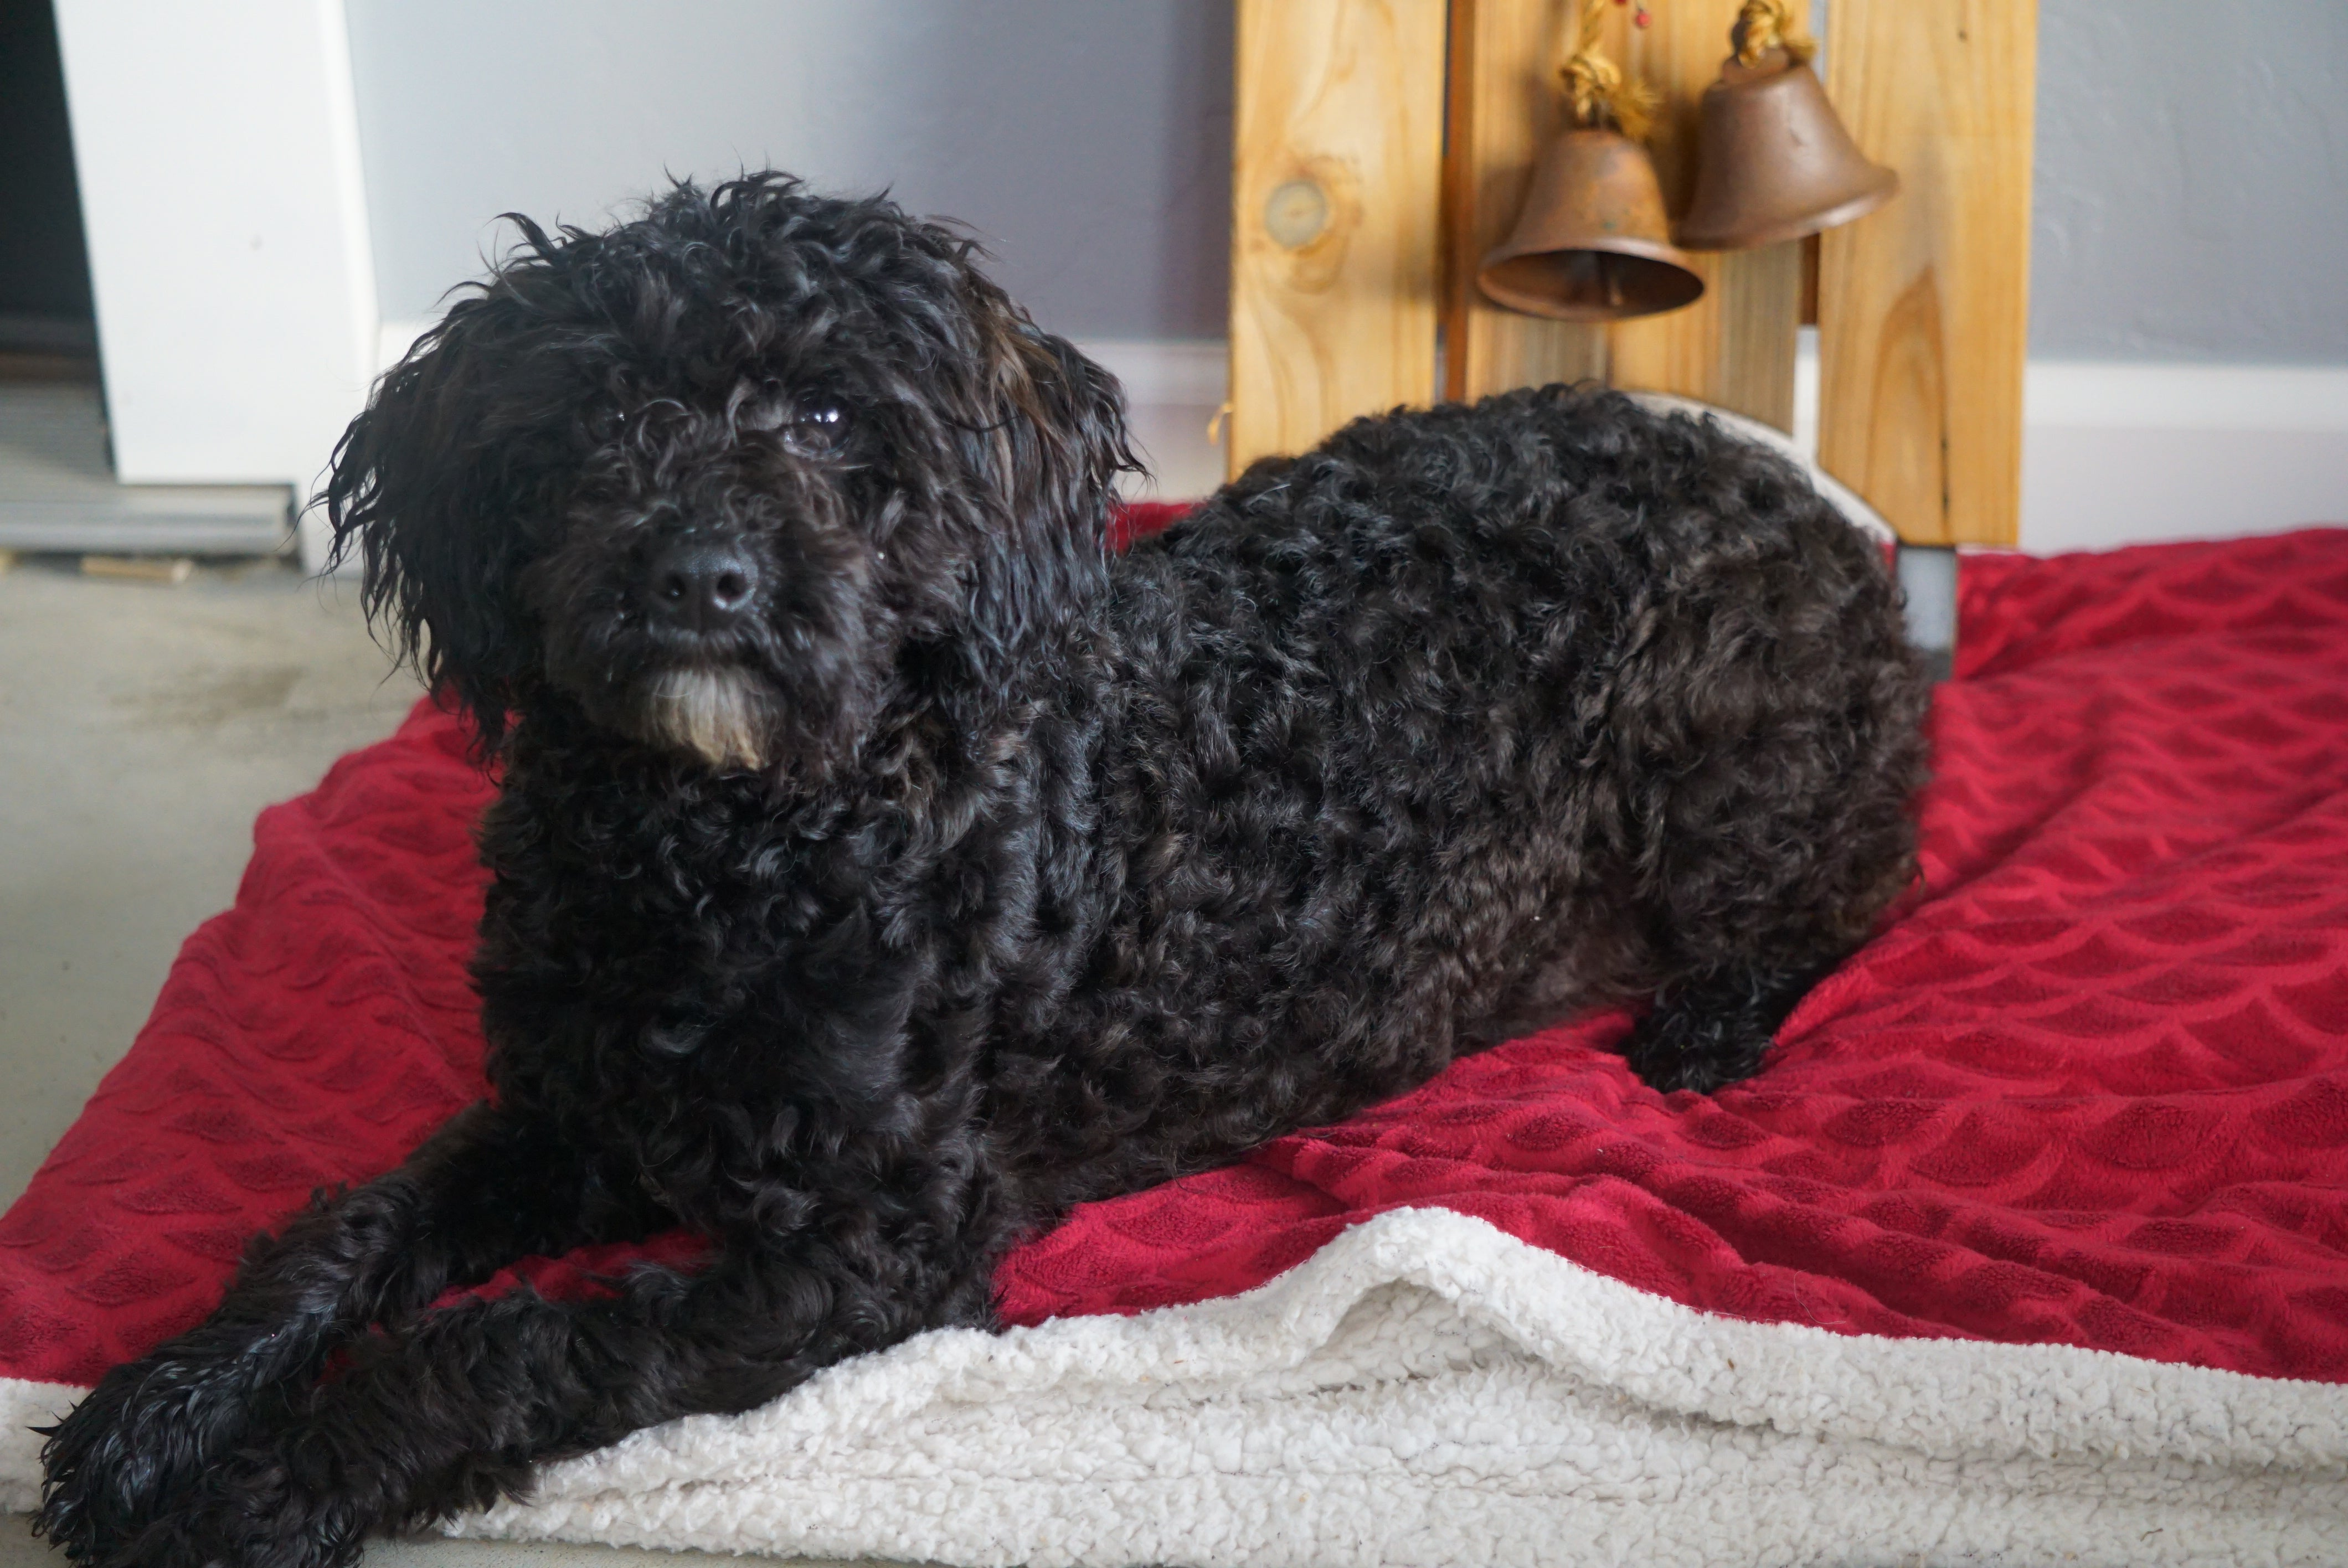 Akc Registered Miniature Poodle For Sale Sugarcreek Oh Male